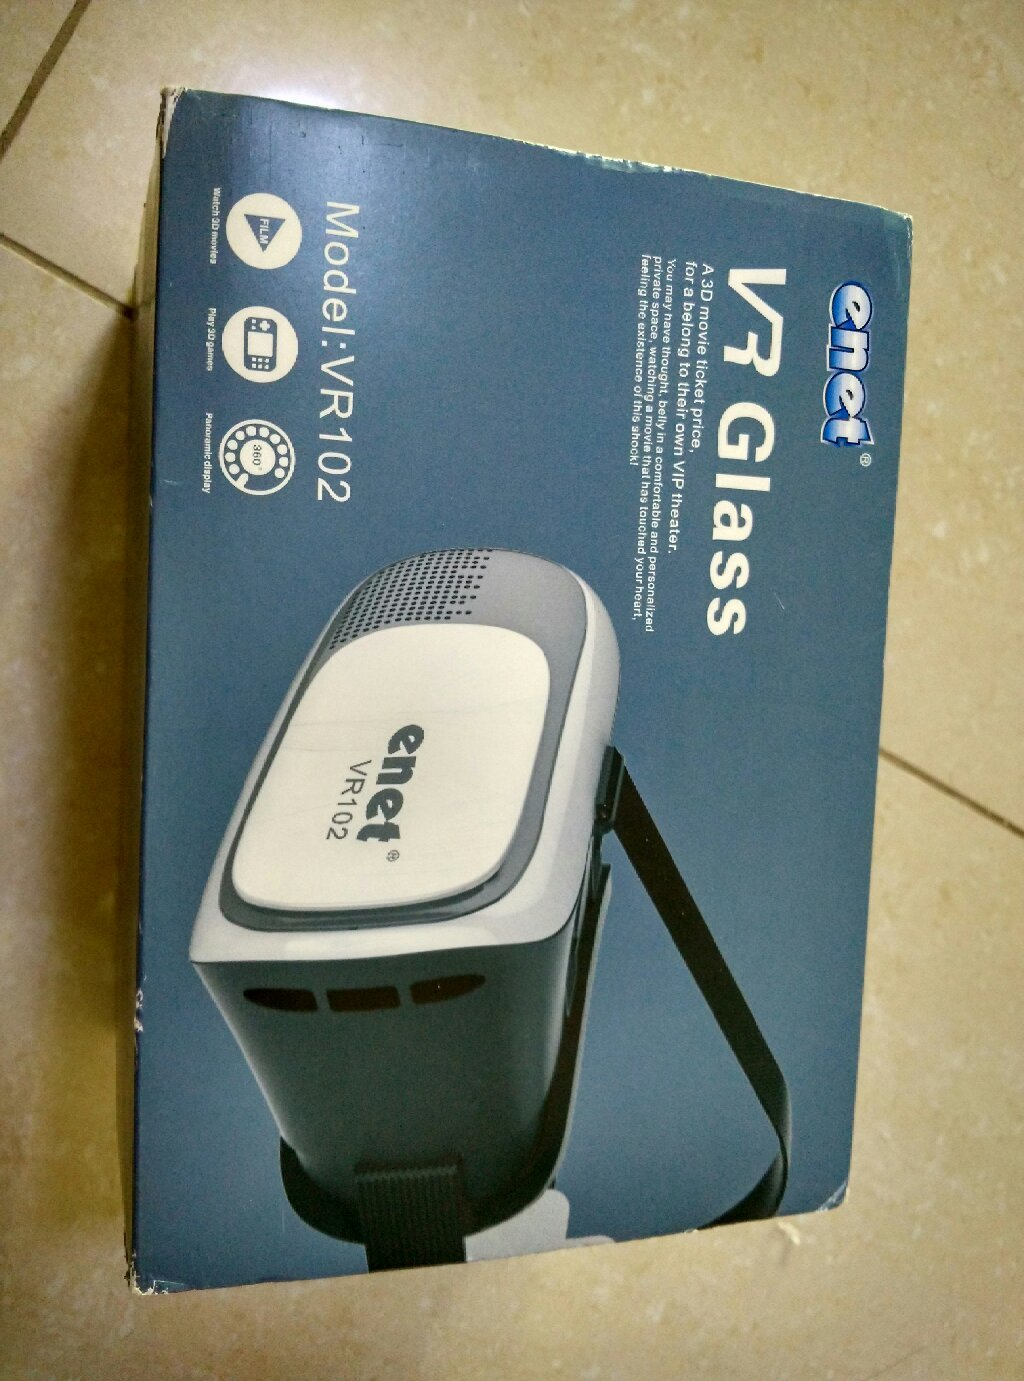 VR Box, never used